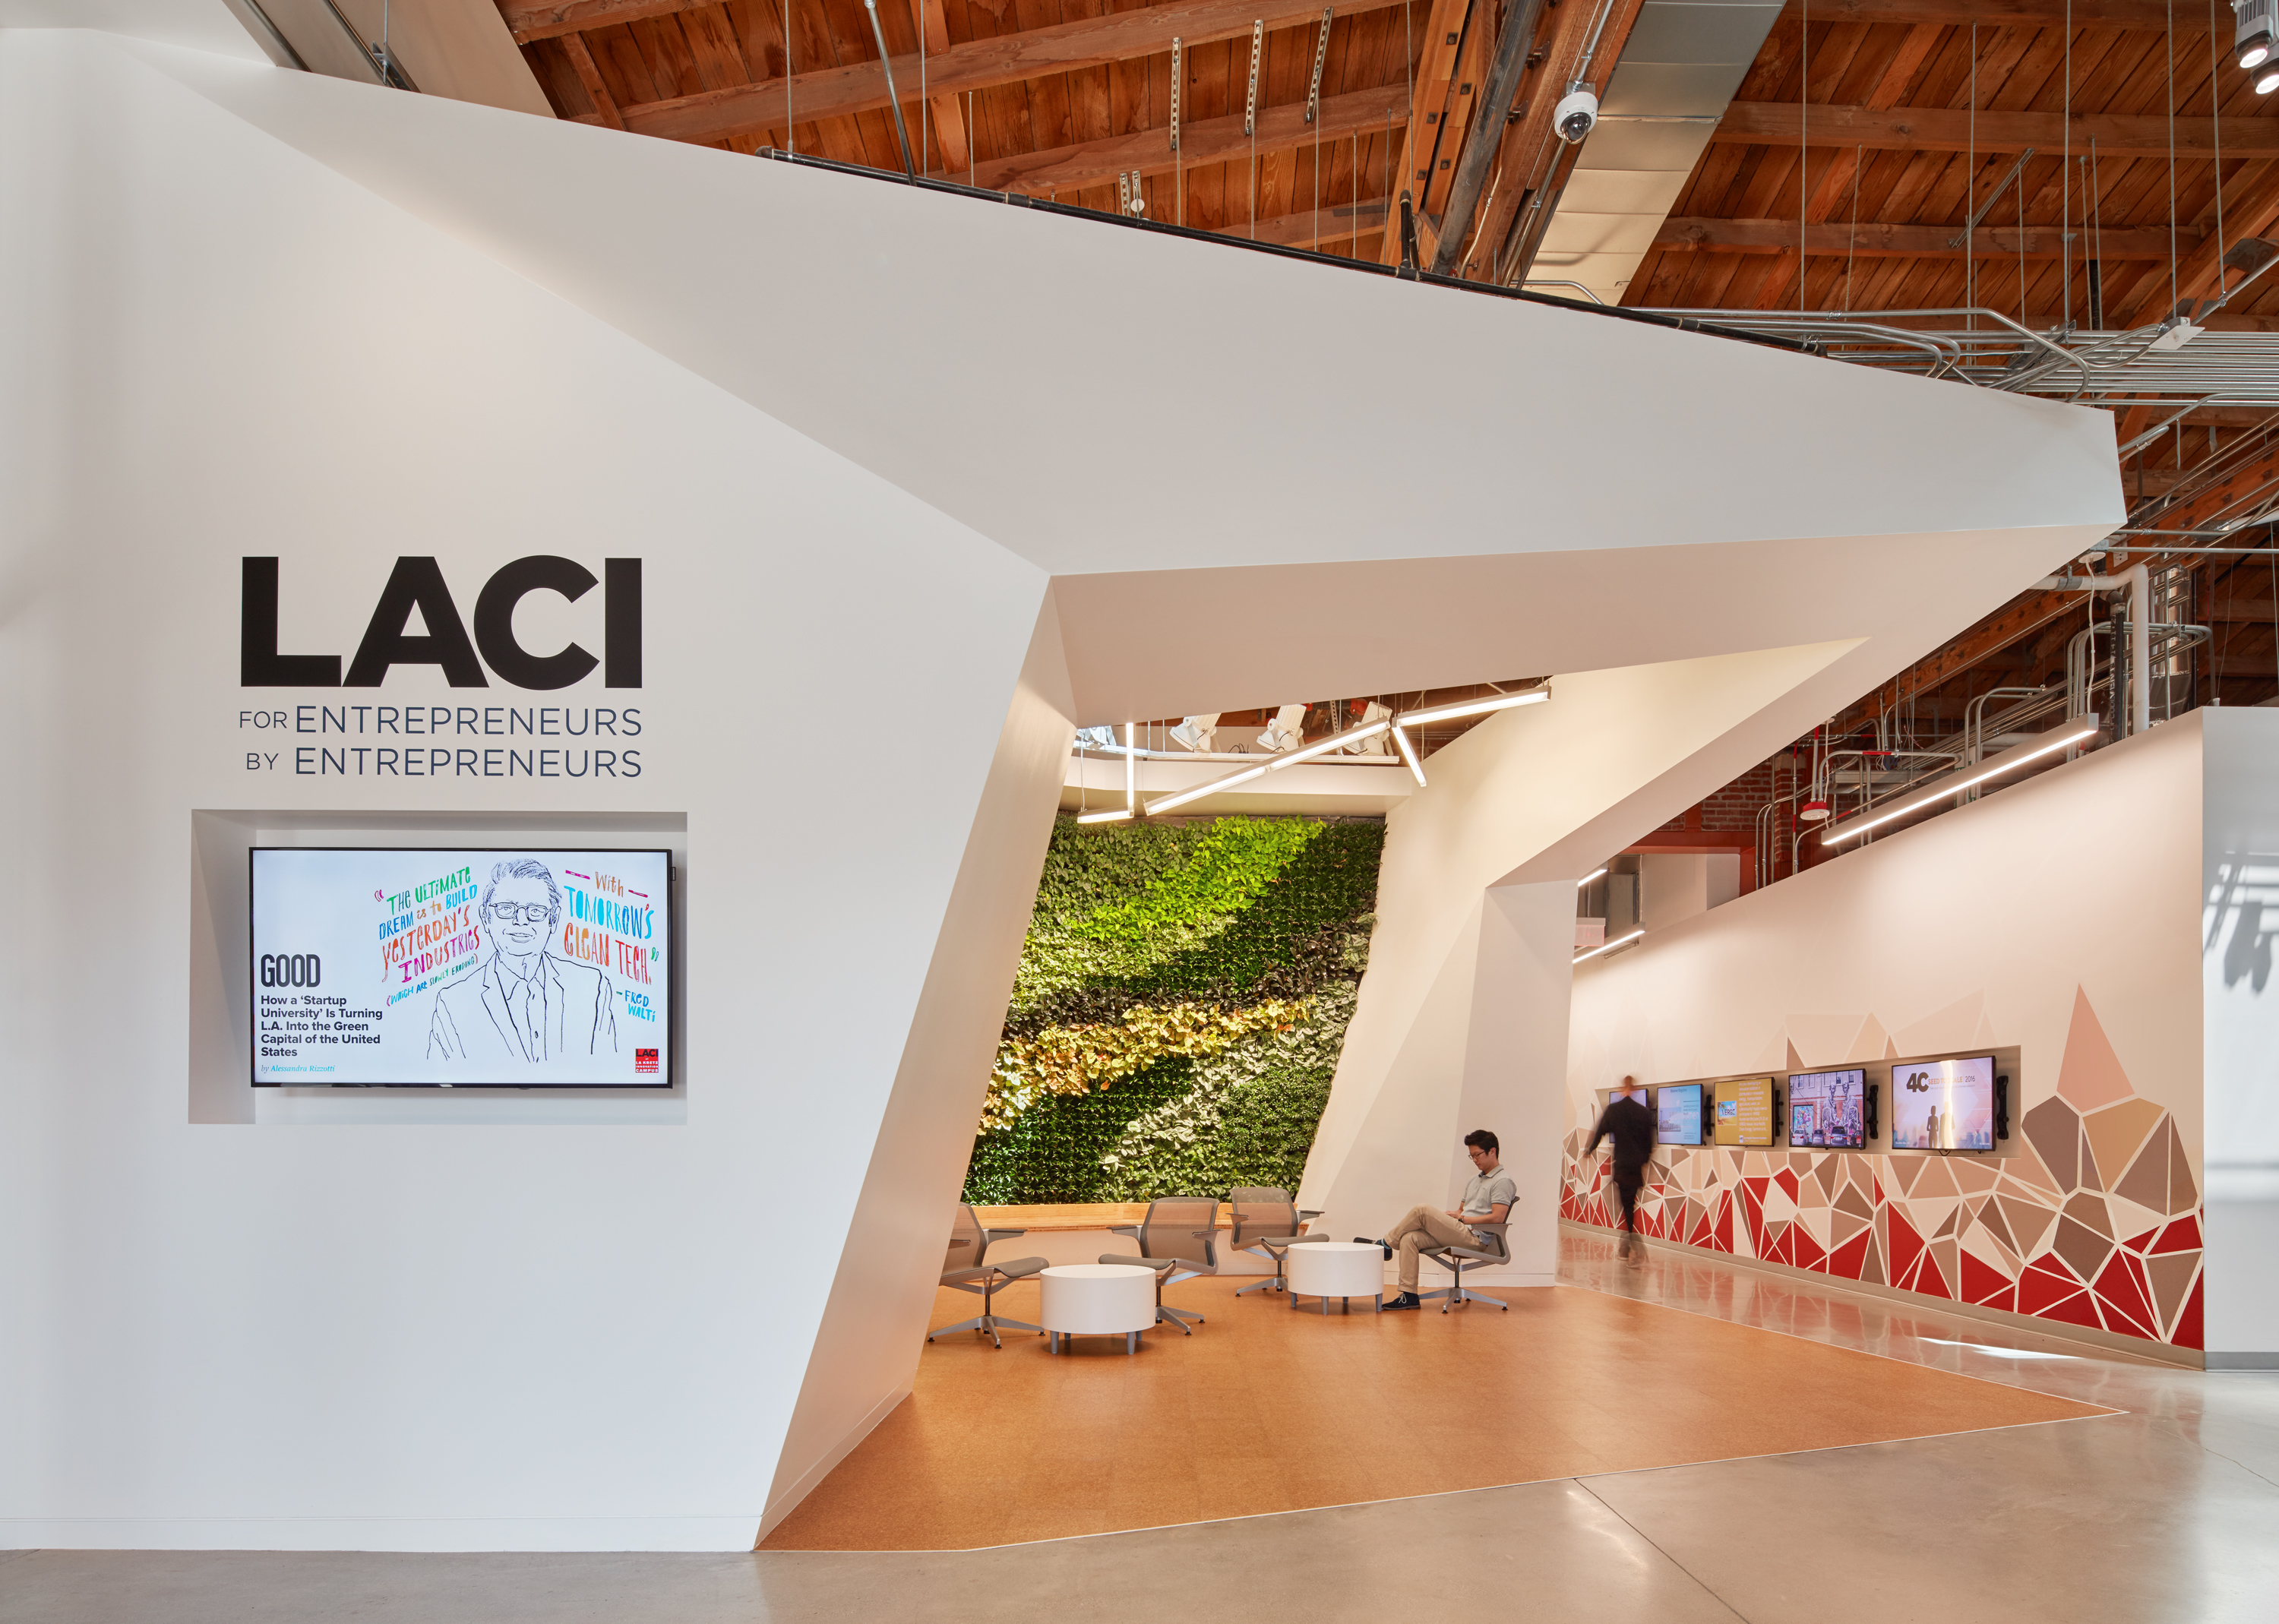 Laci La Kretz Innovation Campus Waveguide